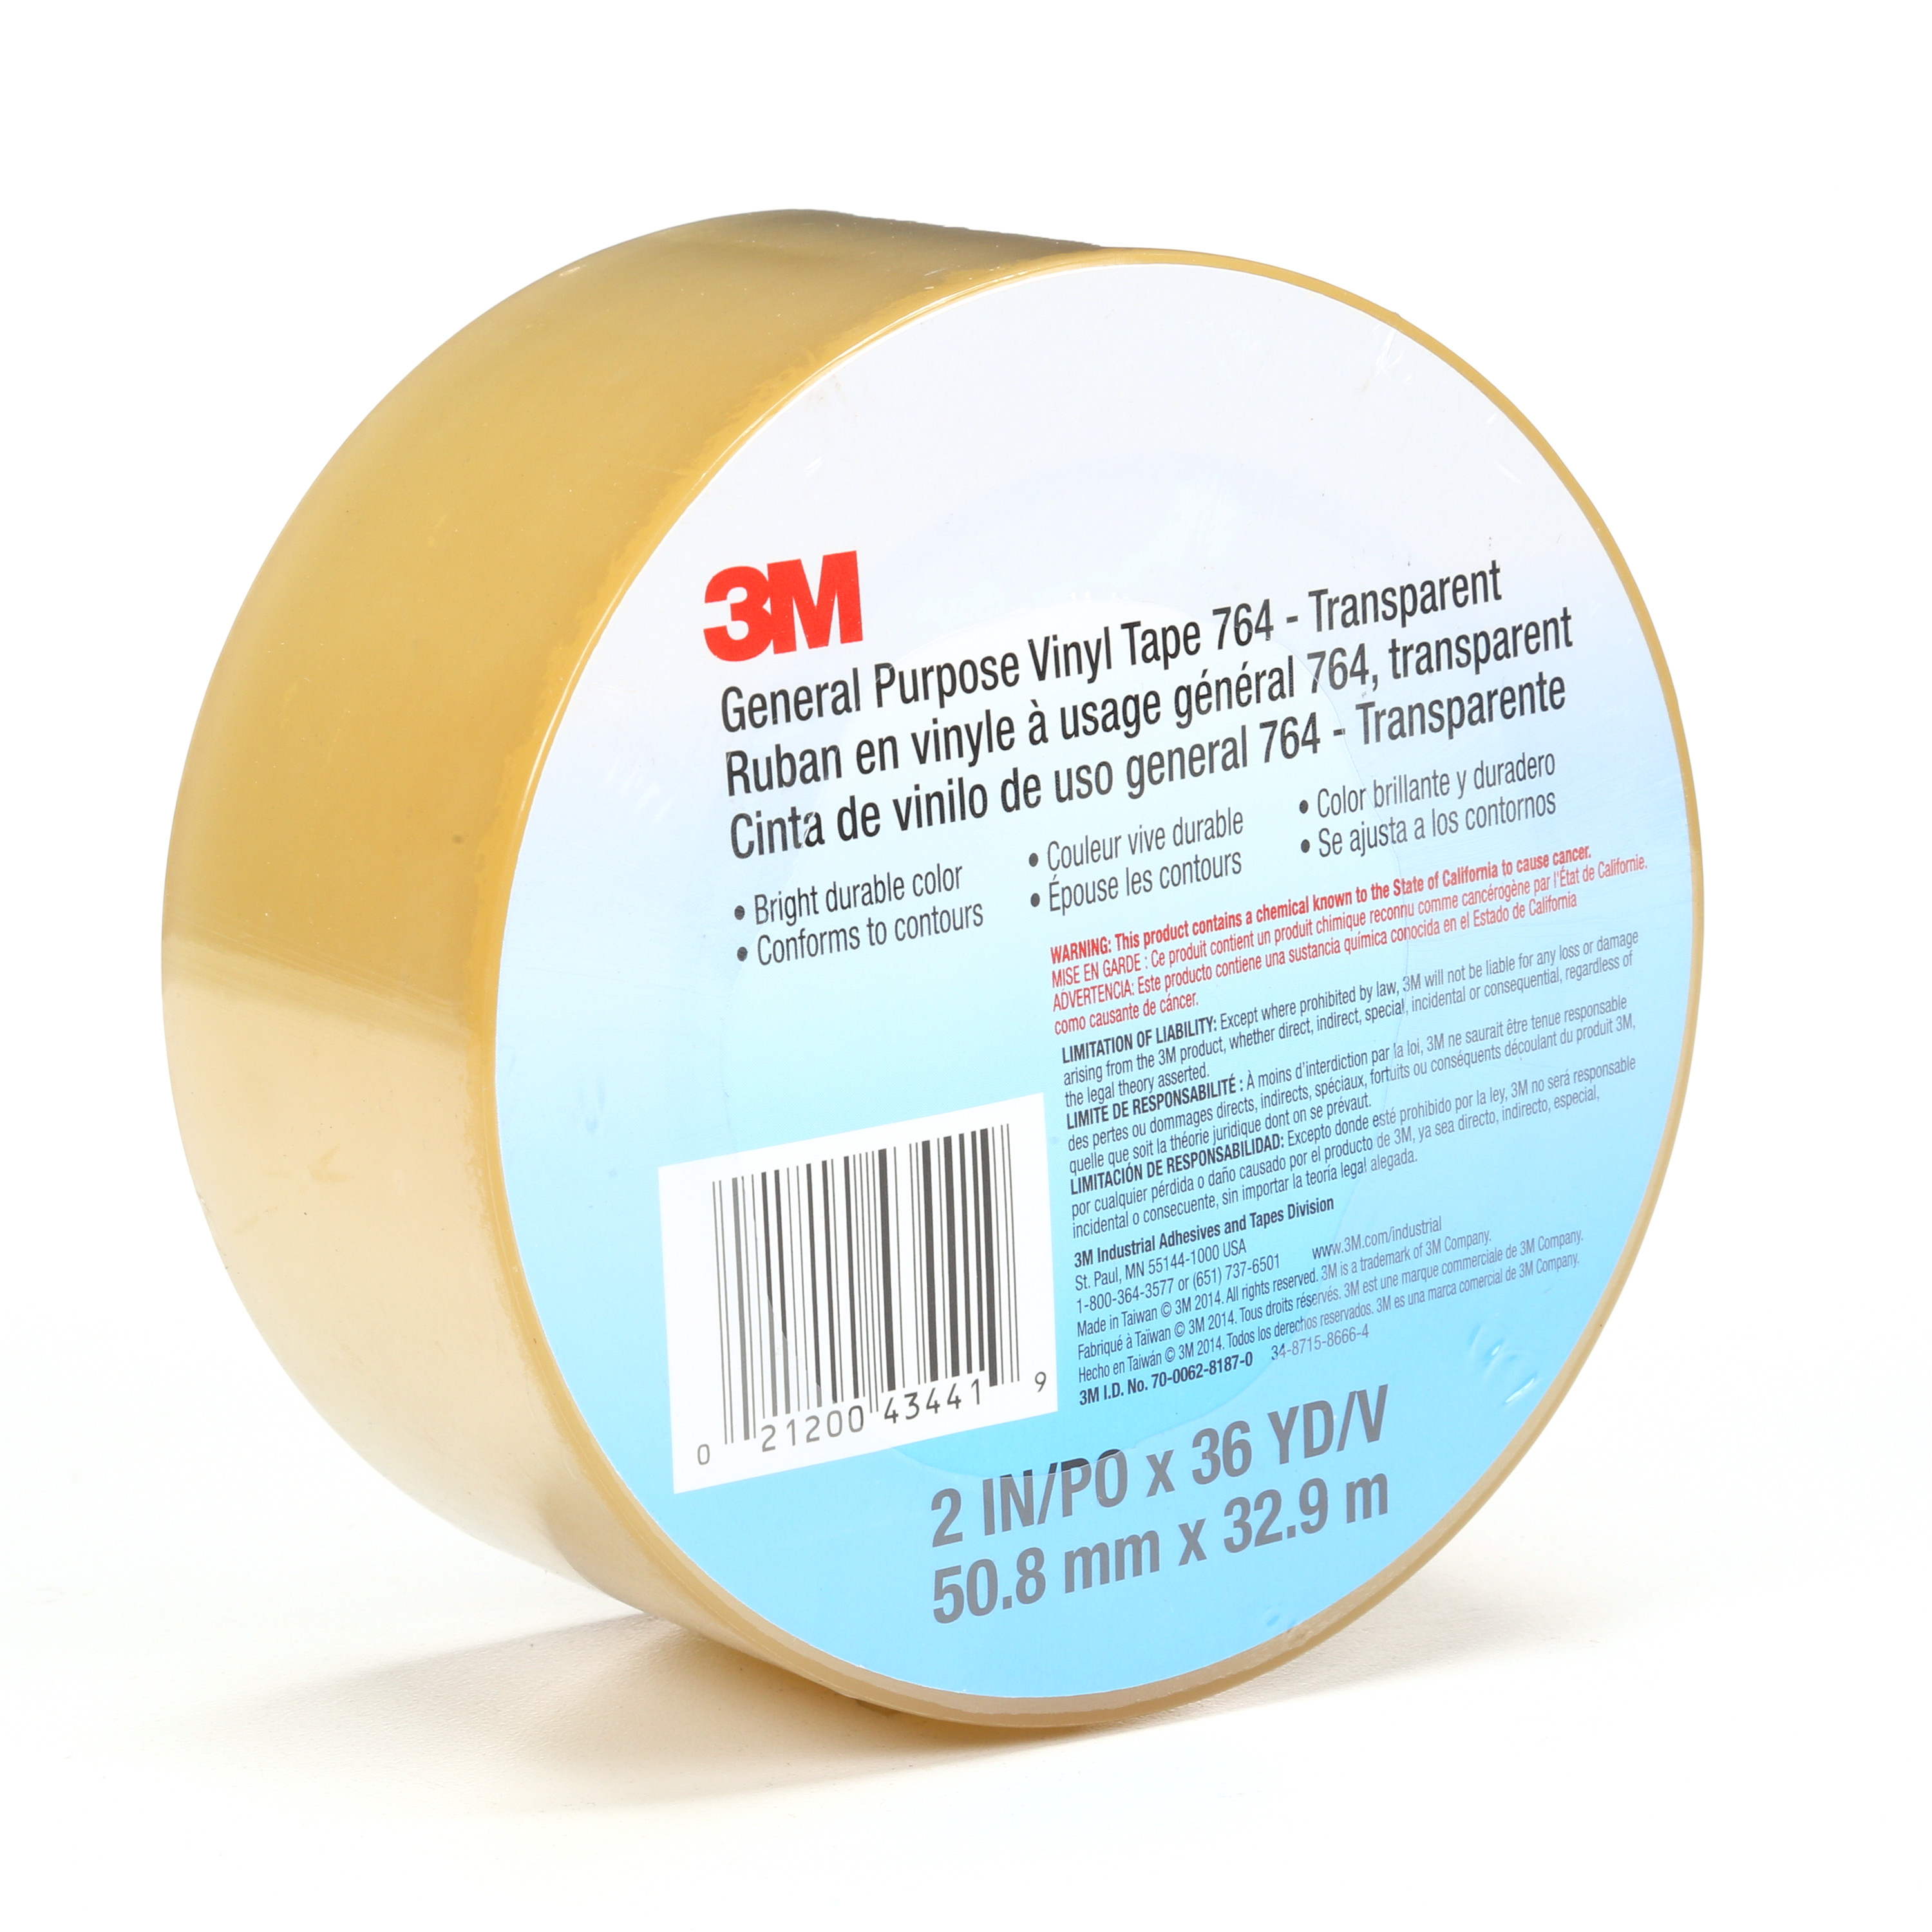 3M™ General Purpose Vinyl Tape 764, Transparent, 2 in x 36 yd, 5 mil, 24 Roll/Case, Individually Wrapped Conveniently Packaged